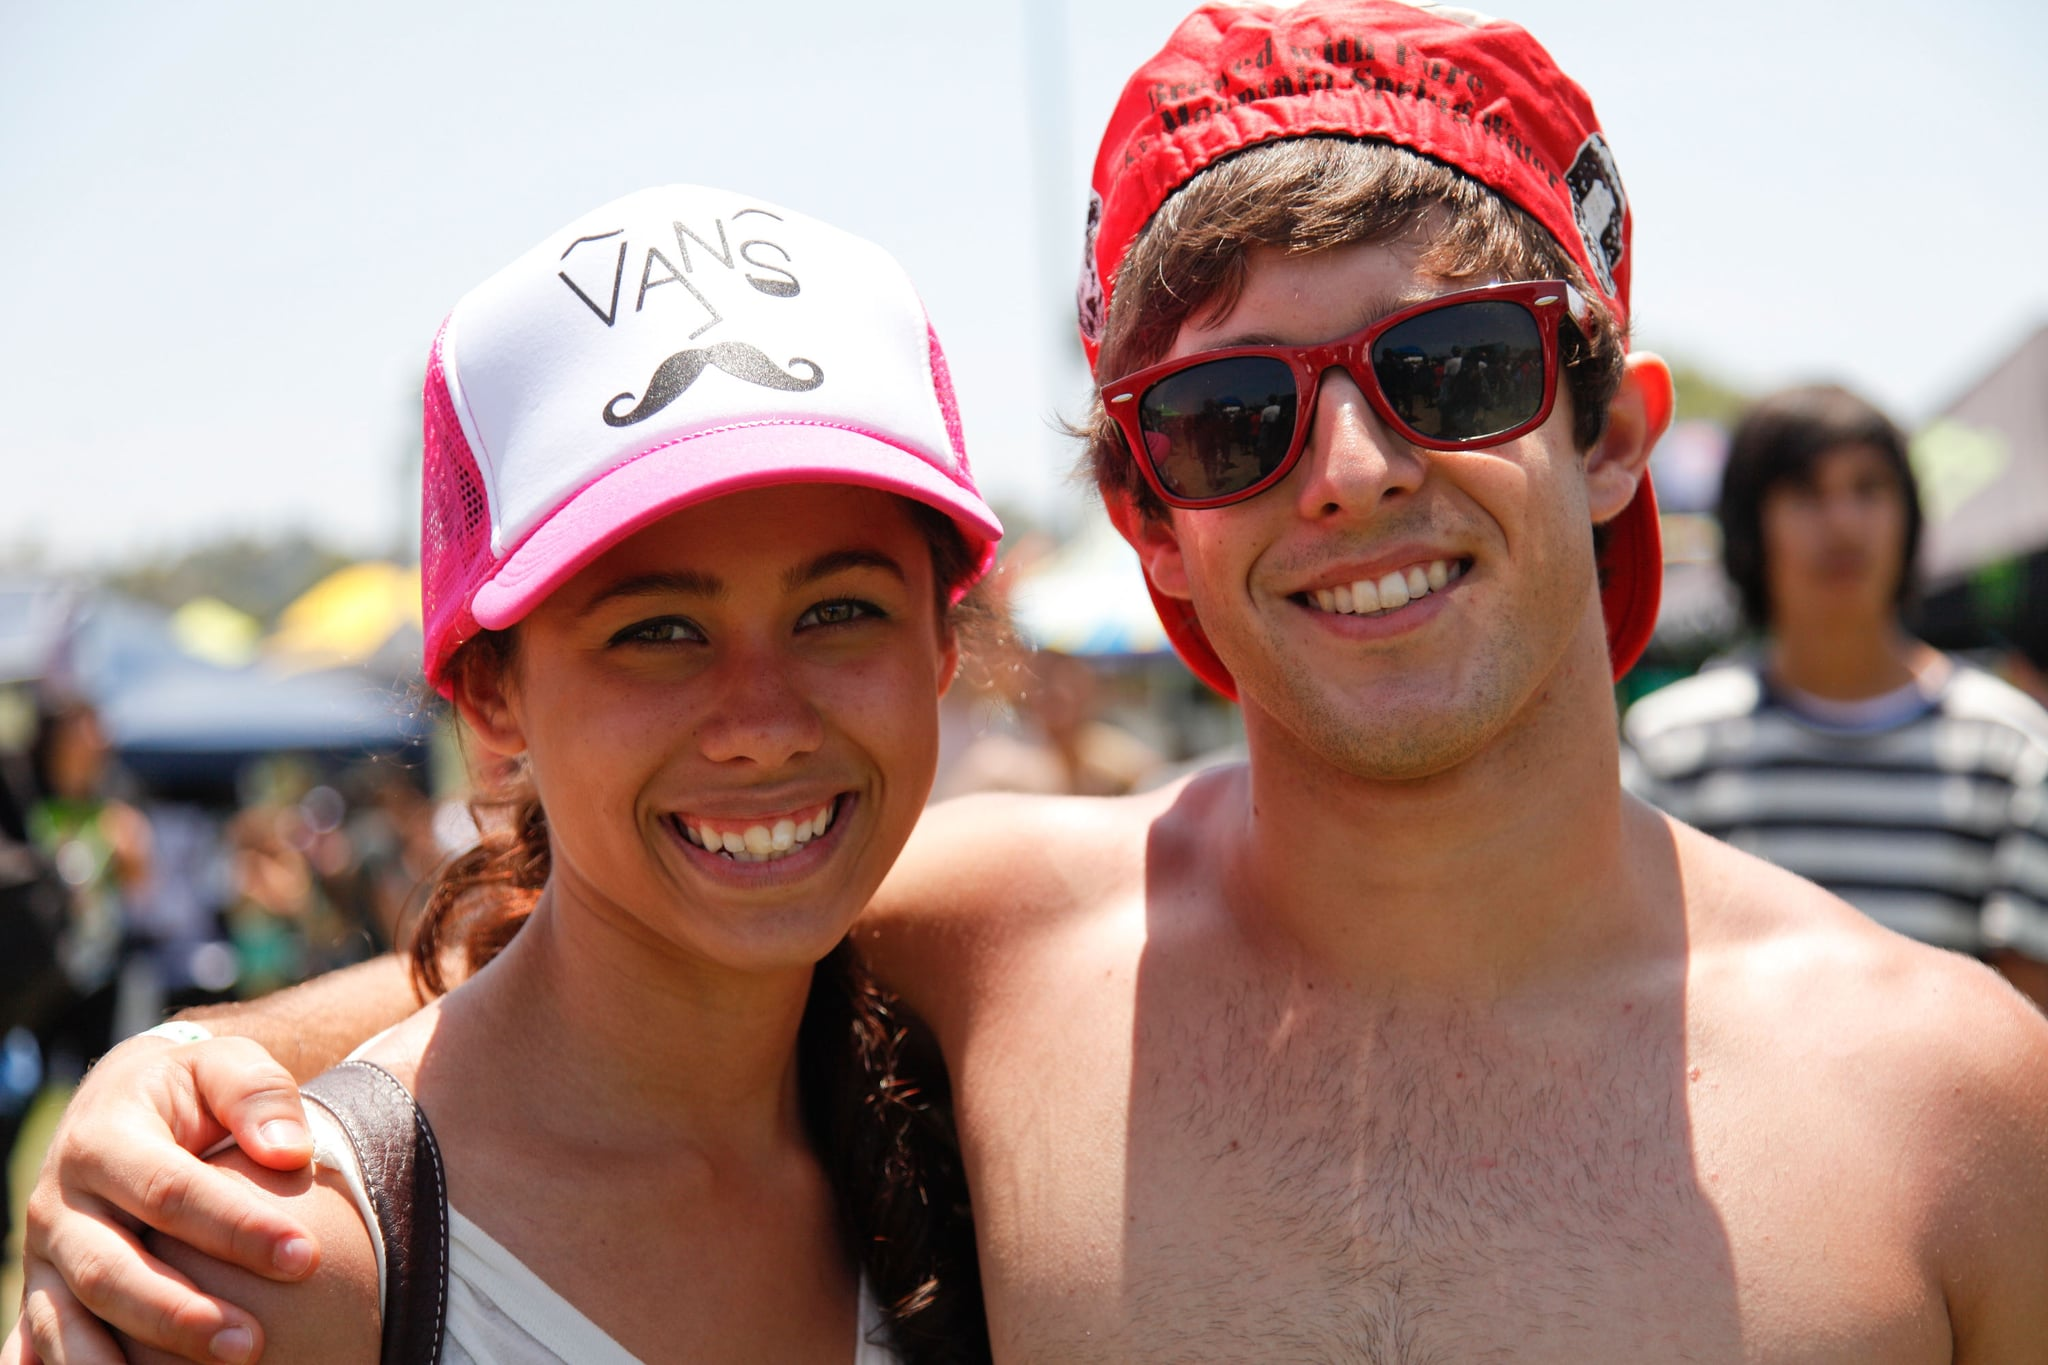 A cute couple donned hats at the 2012 Vans Warped Tour at Pomona Fairplex in Pomona, CA.